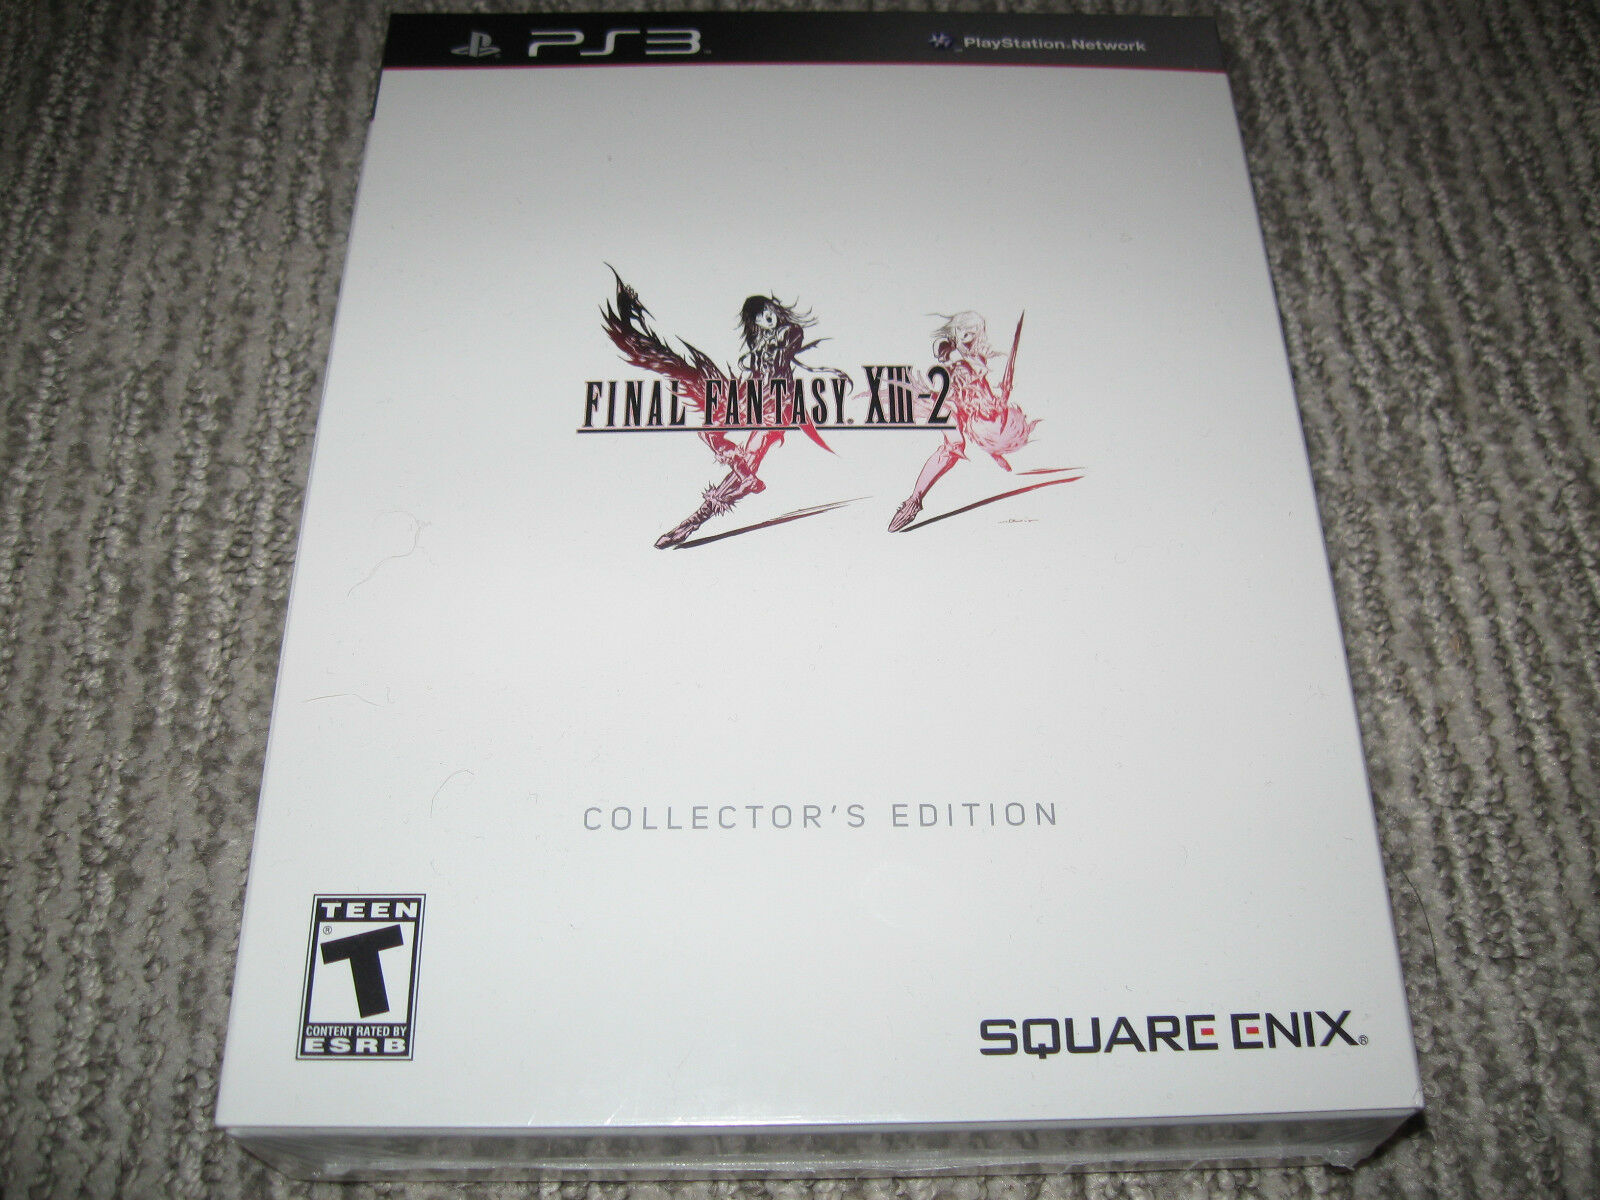 Final Fantasy Xiii-2 Limited Collector's Edition Game Son...